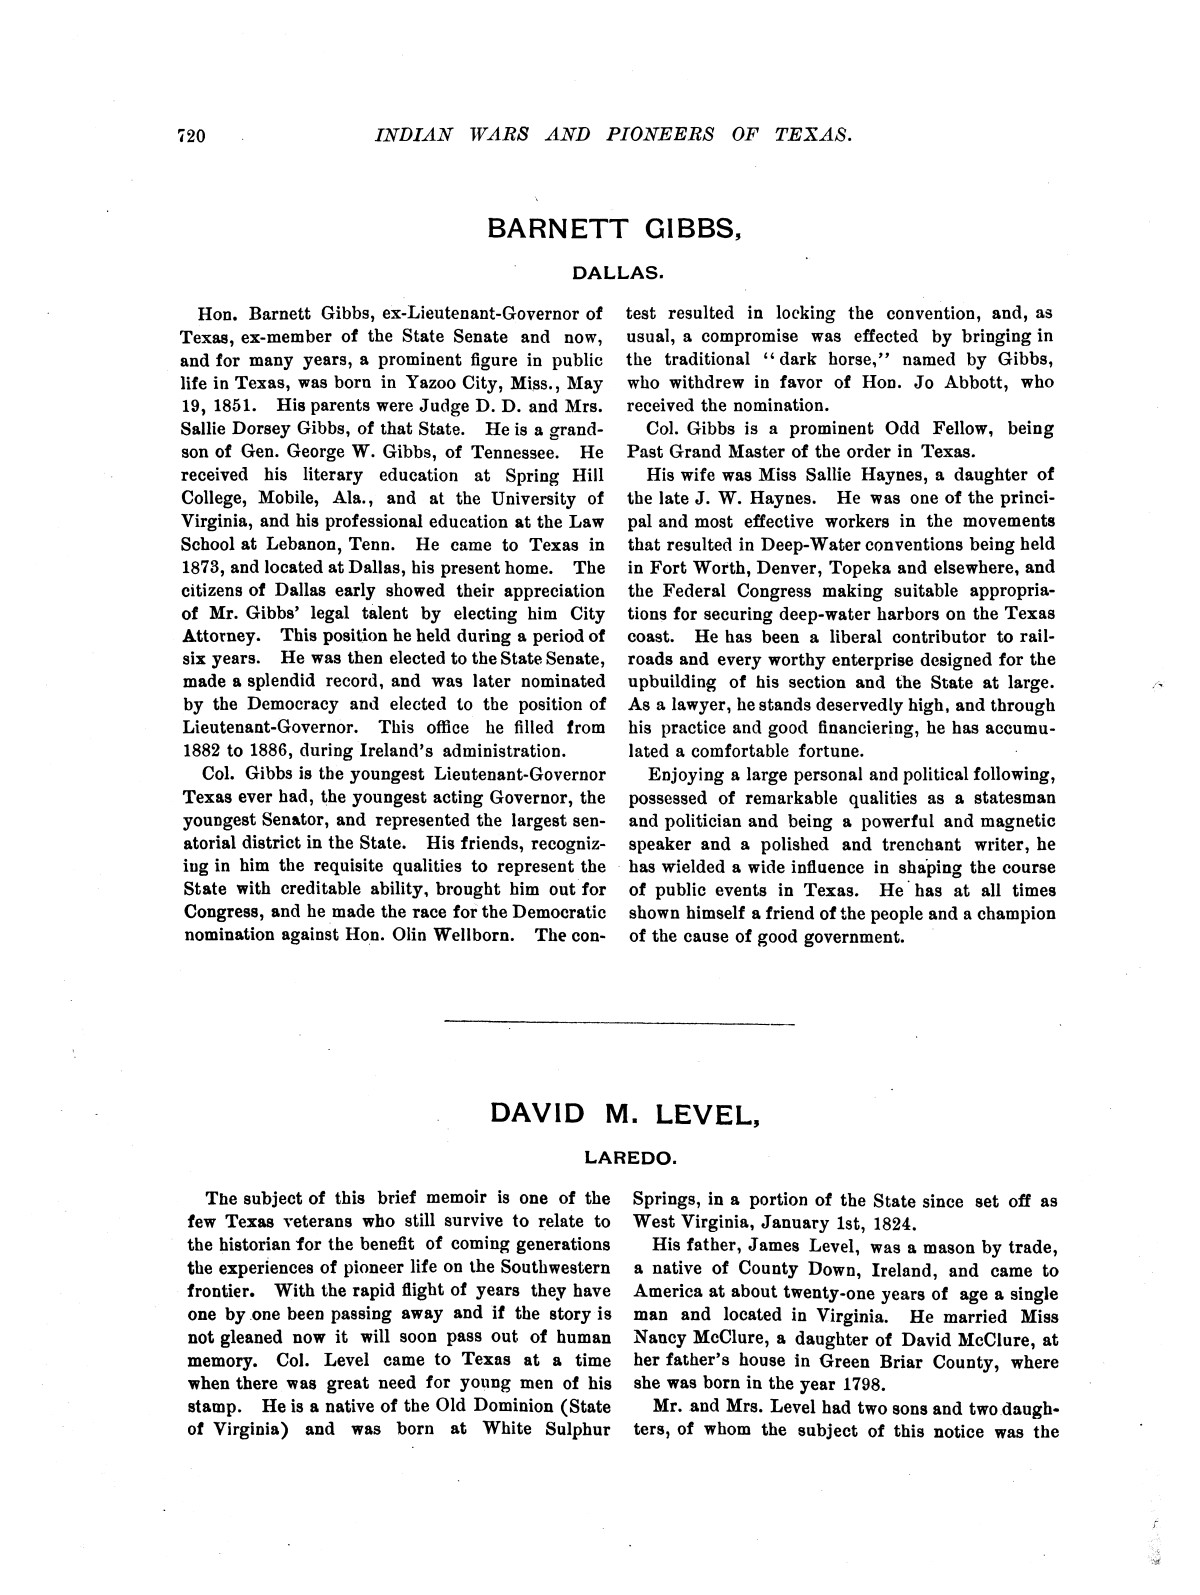 Indian wars and pioneers of Texas / by John Henry Brown.                                                                                                      [Sequence #]: 835 of 894